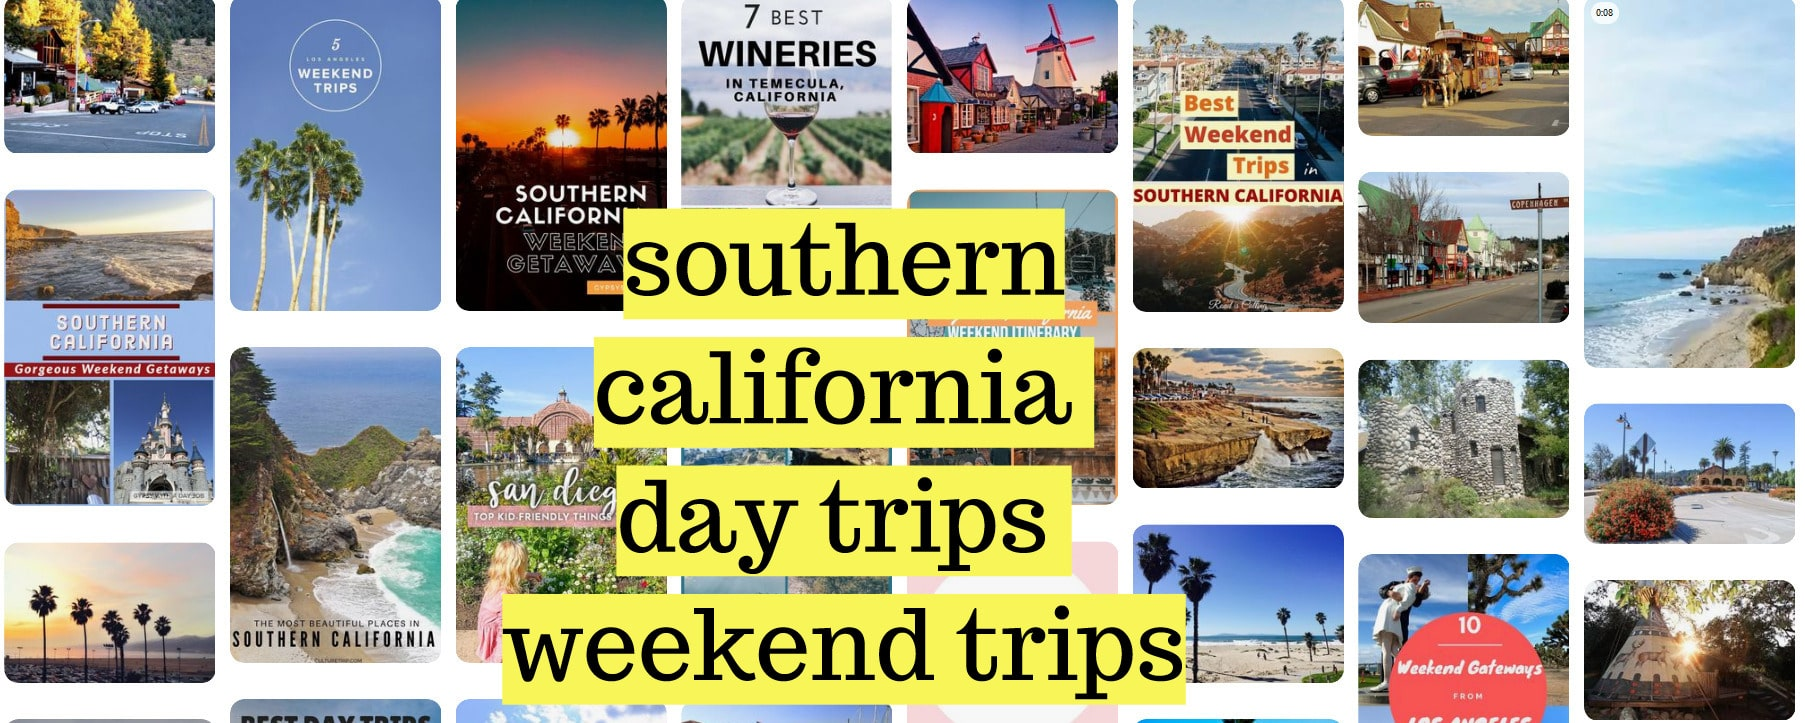 southern california day trips , southern california weekend trips